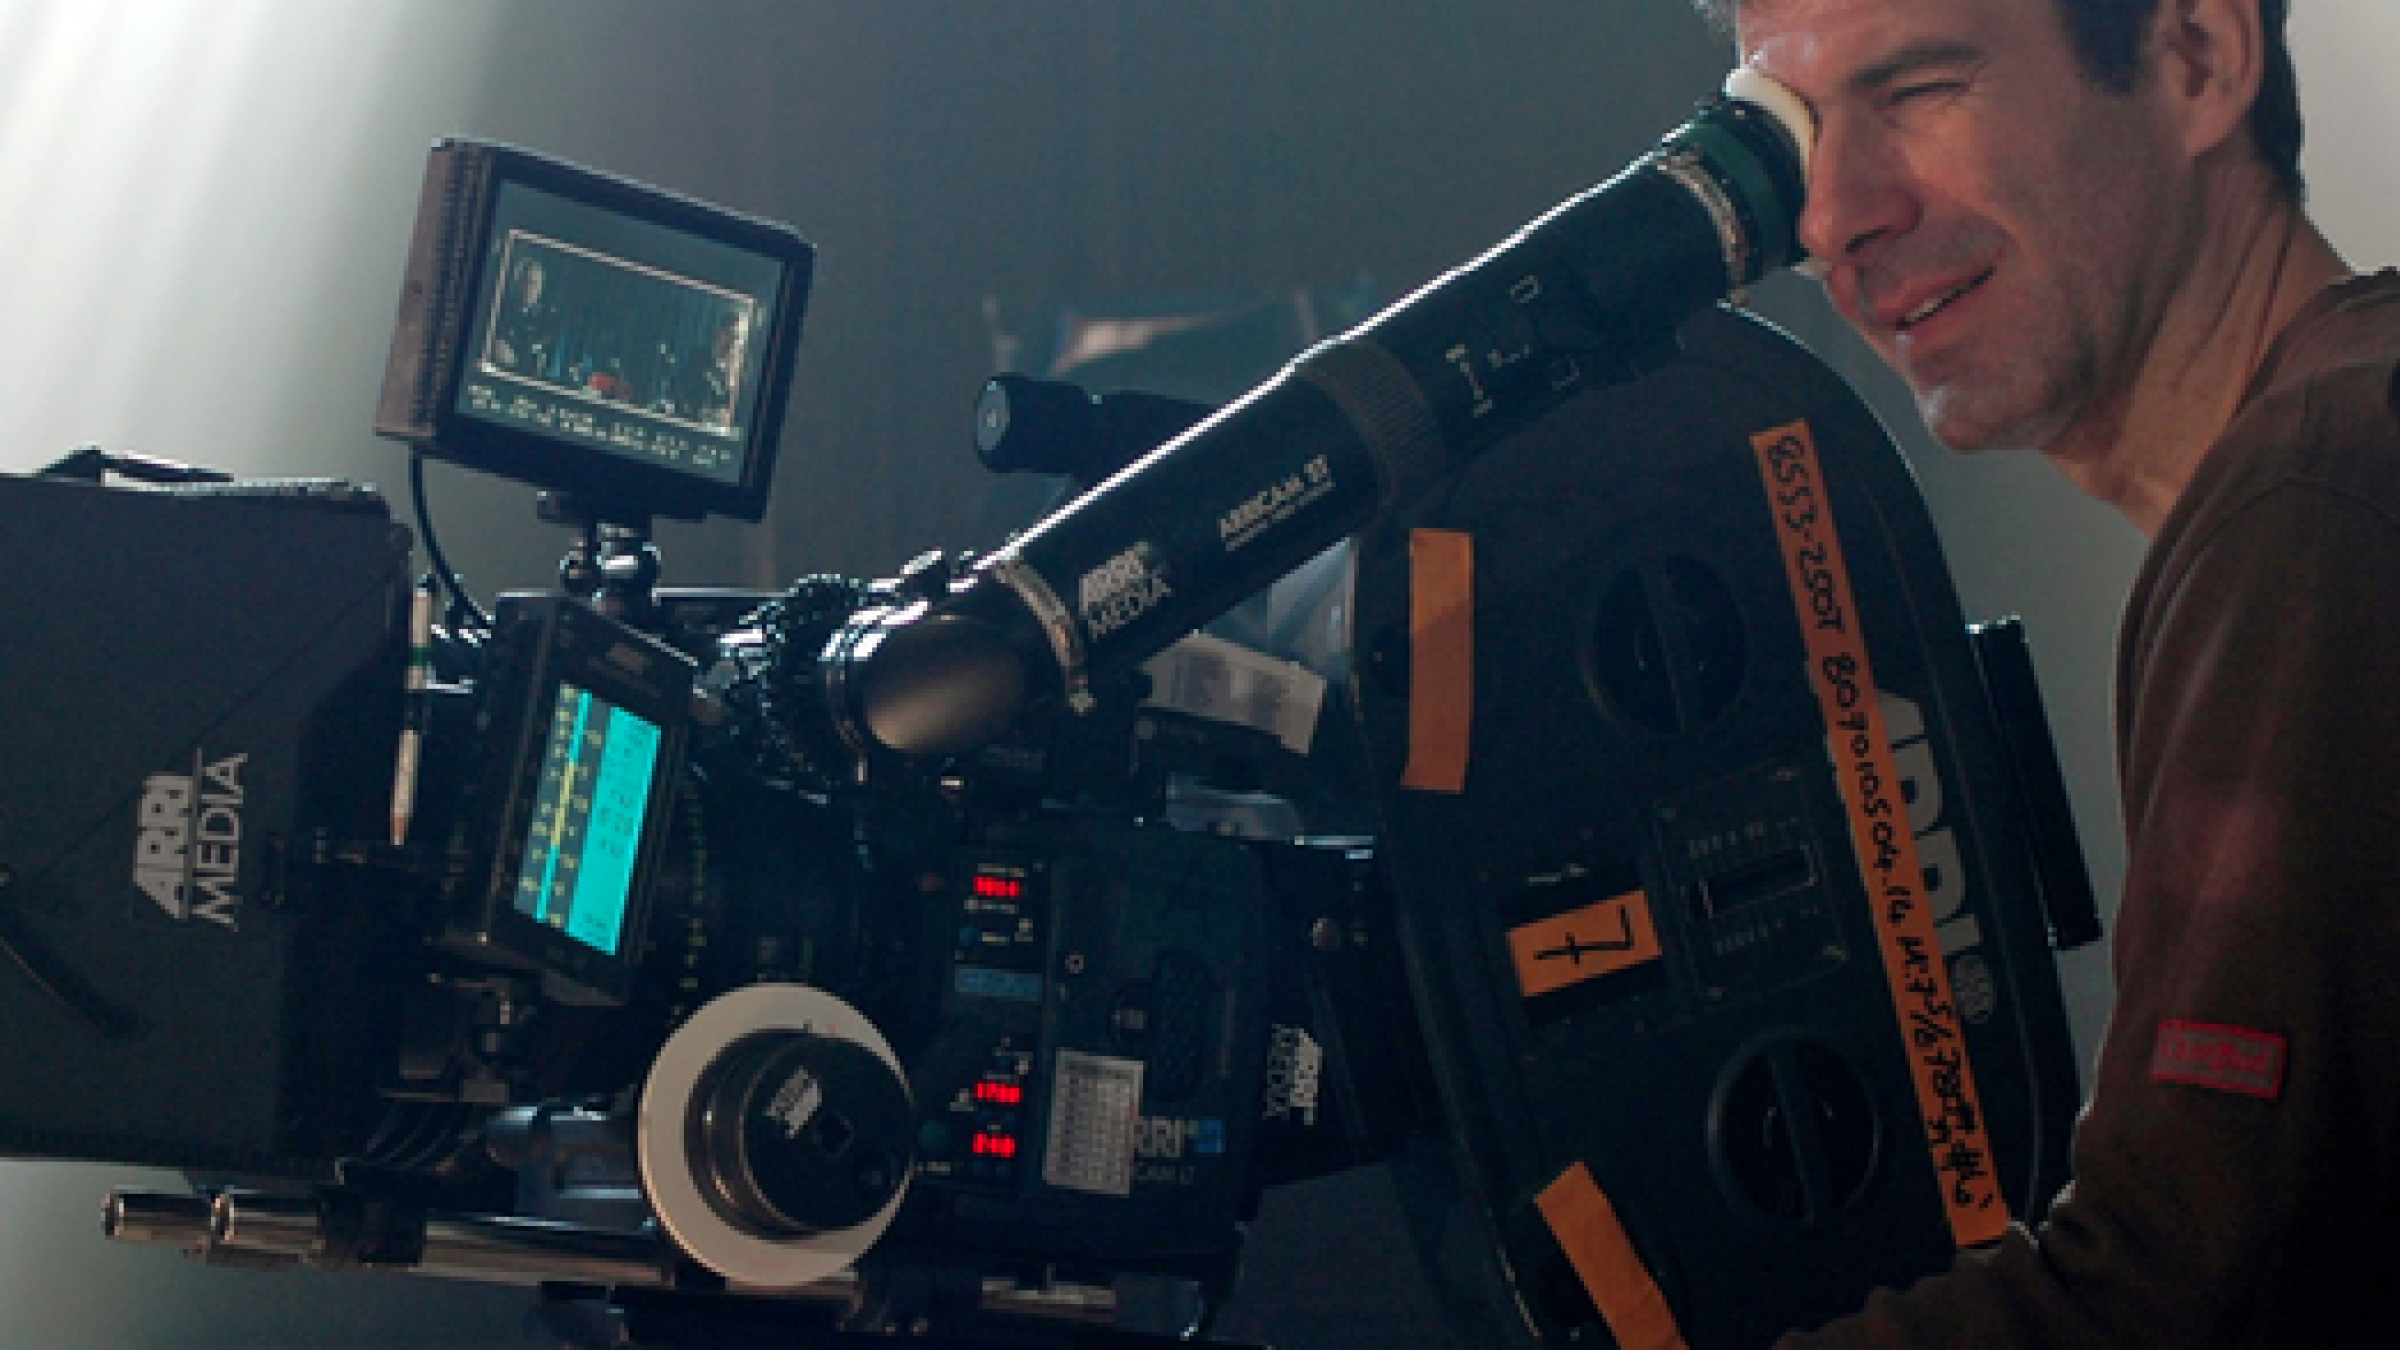 'House of Cards' DP Reveals the Camera & Lighting Techniques of the Popular Netflix Series